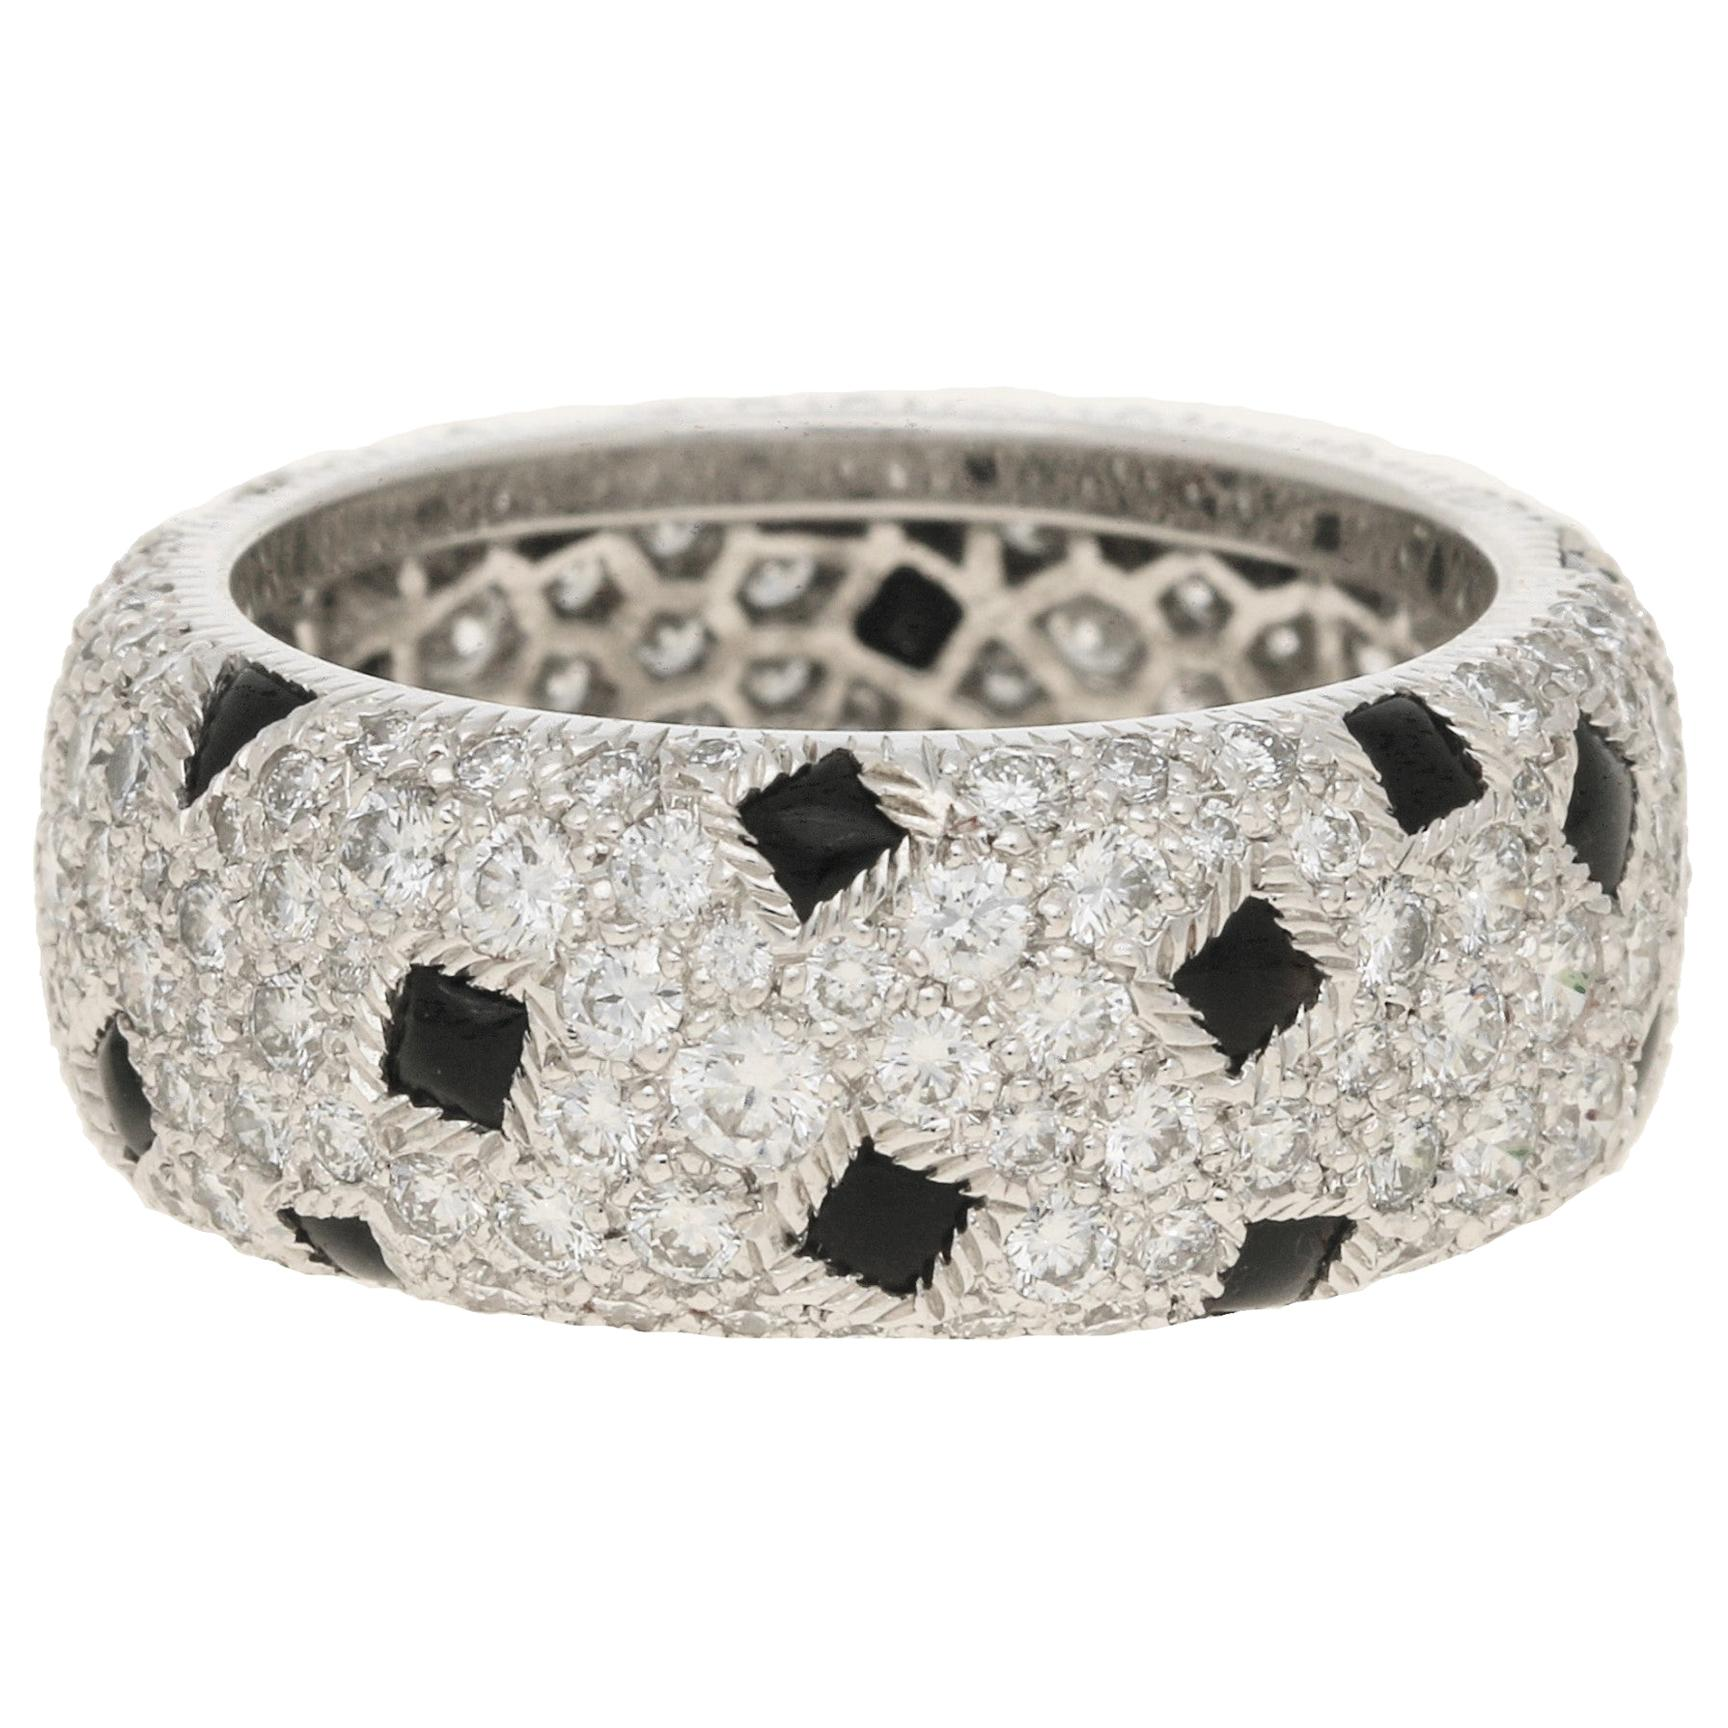 Cartier Pelage Diamond and Onyx Eternity Ring Set in 18k White Gold